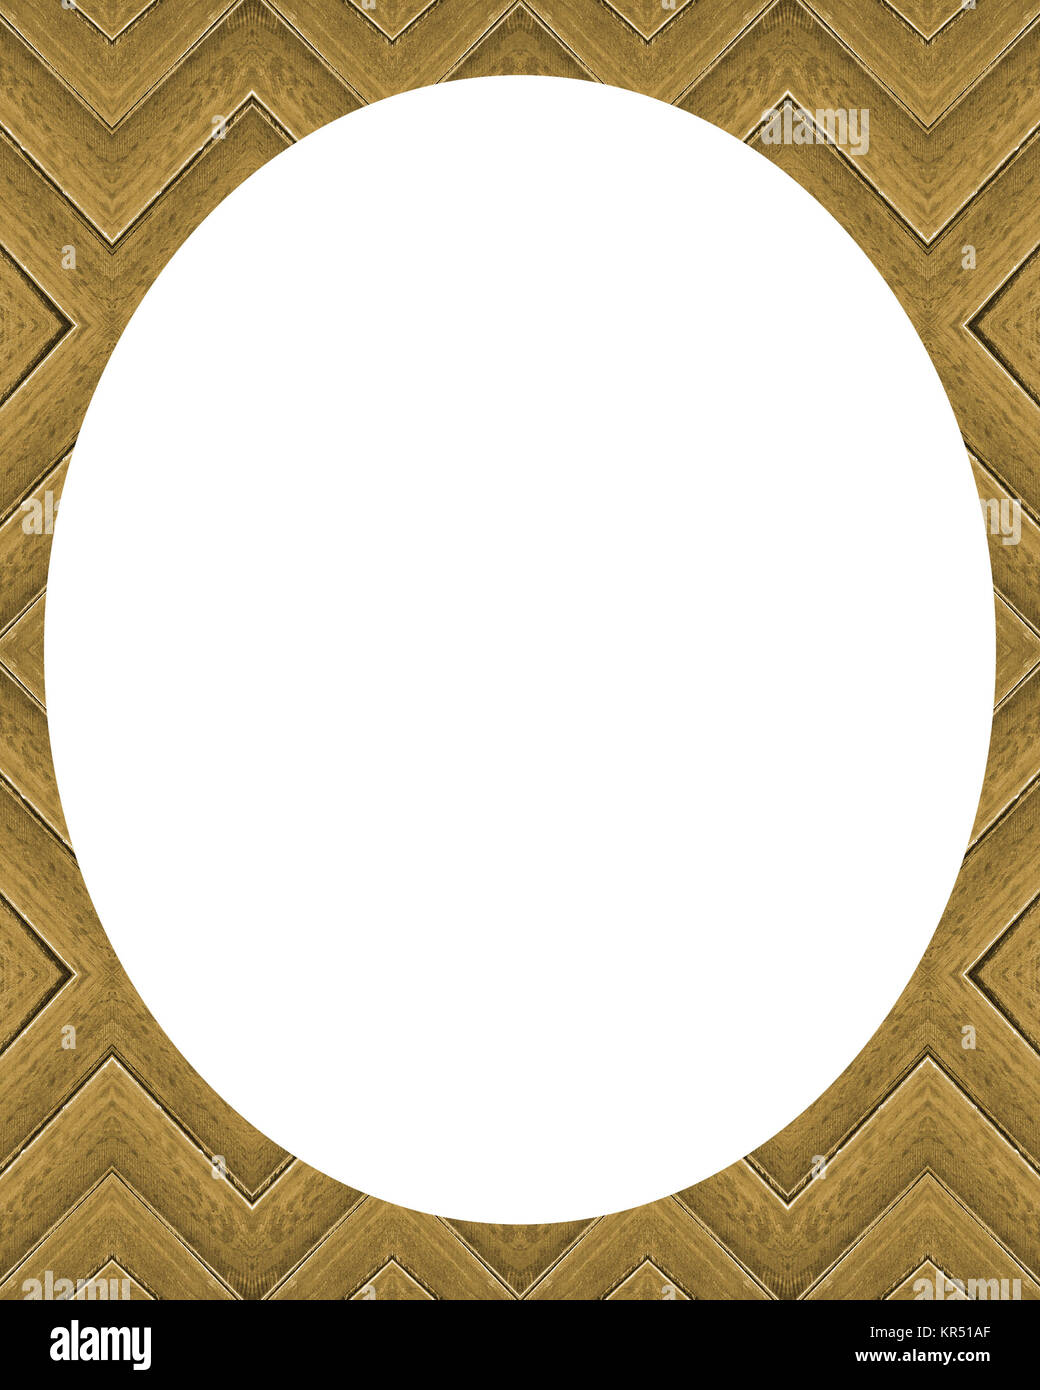 Circle White Frame Background with Decorated Borders - Stock Image